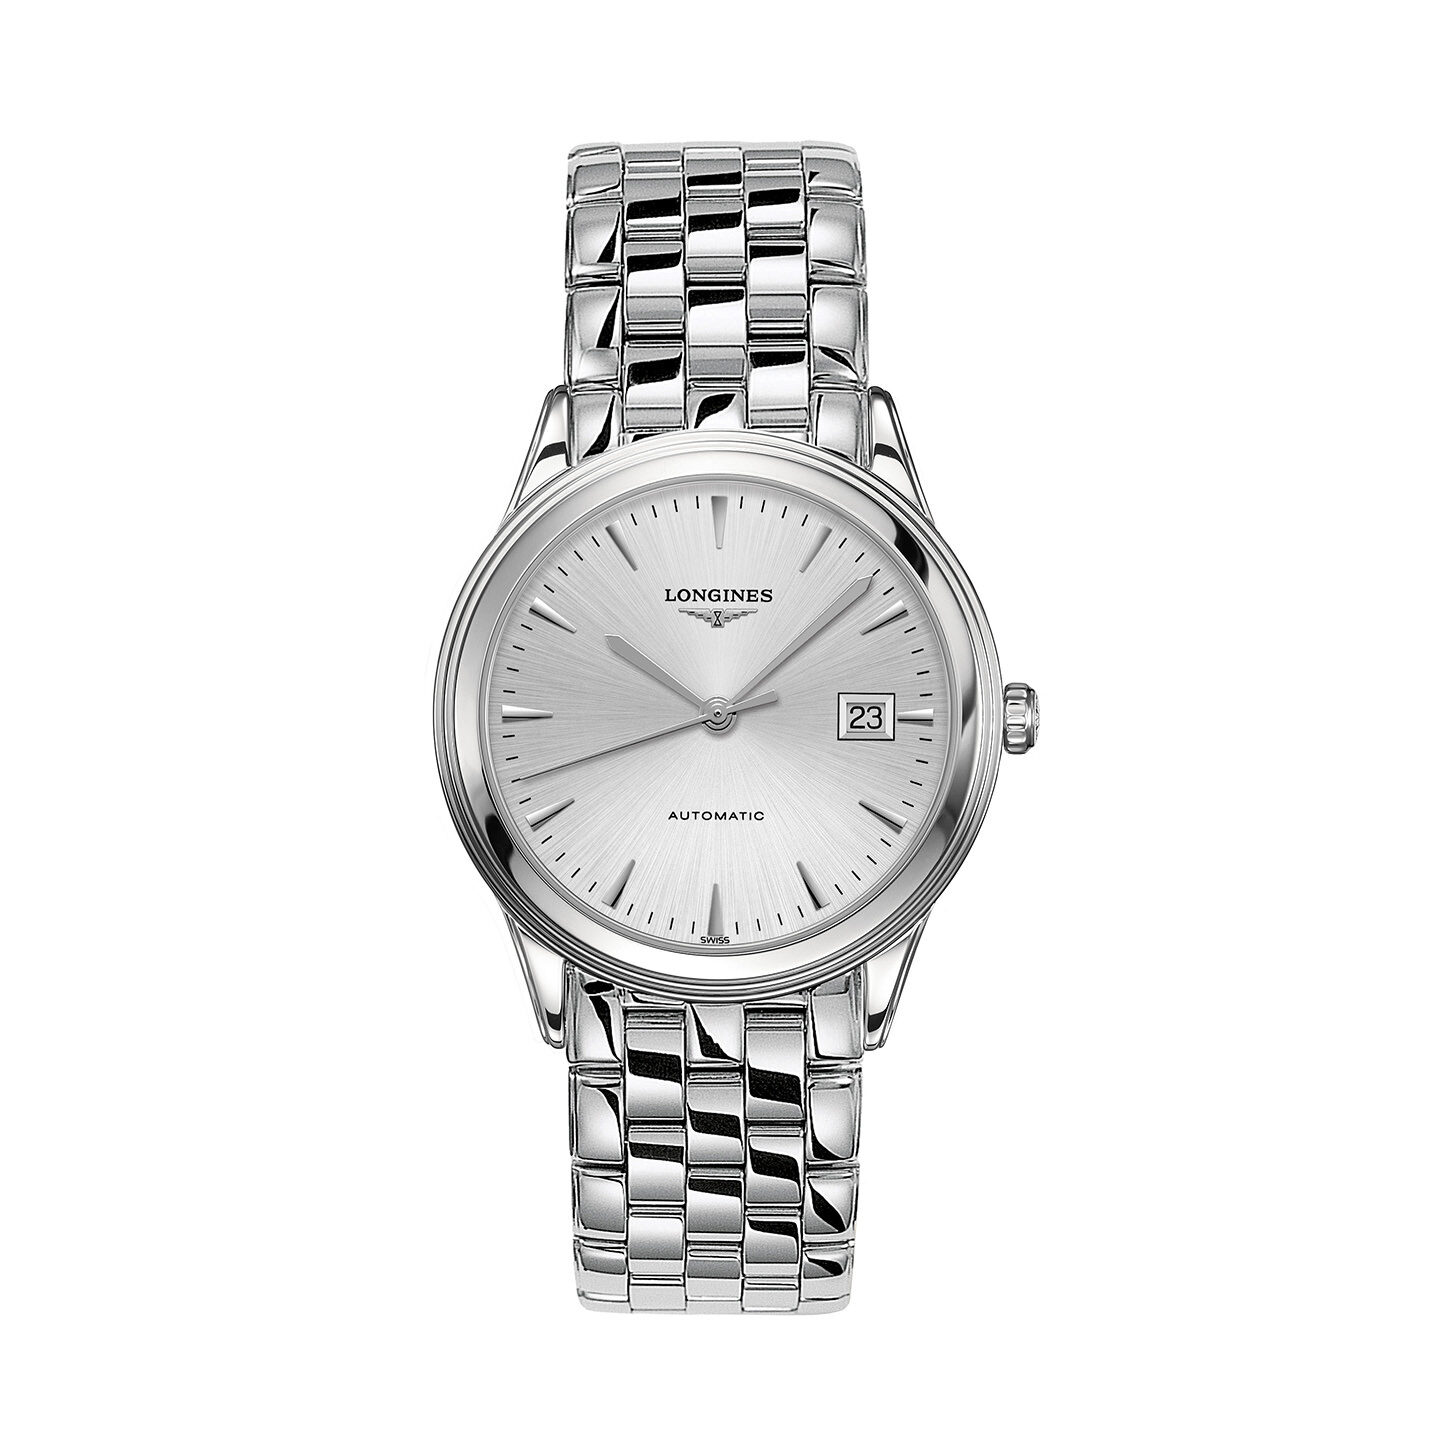 Longines Flagship Collection – Automatic Watch